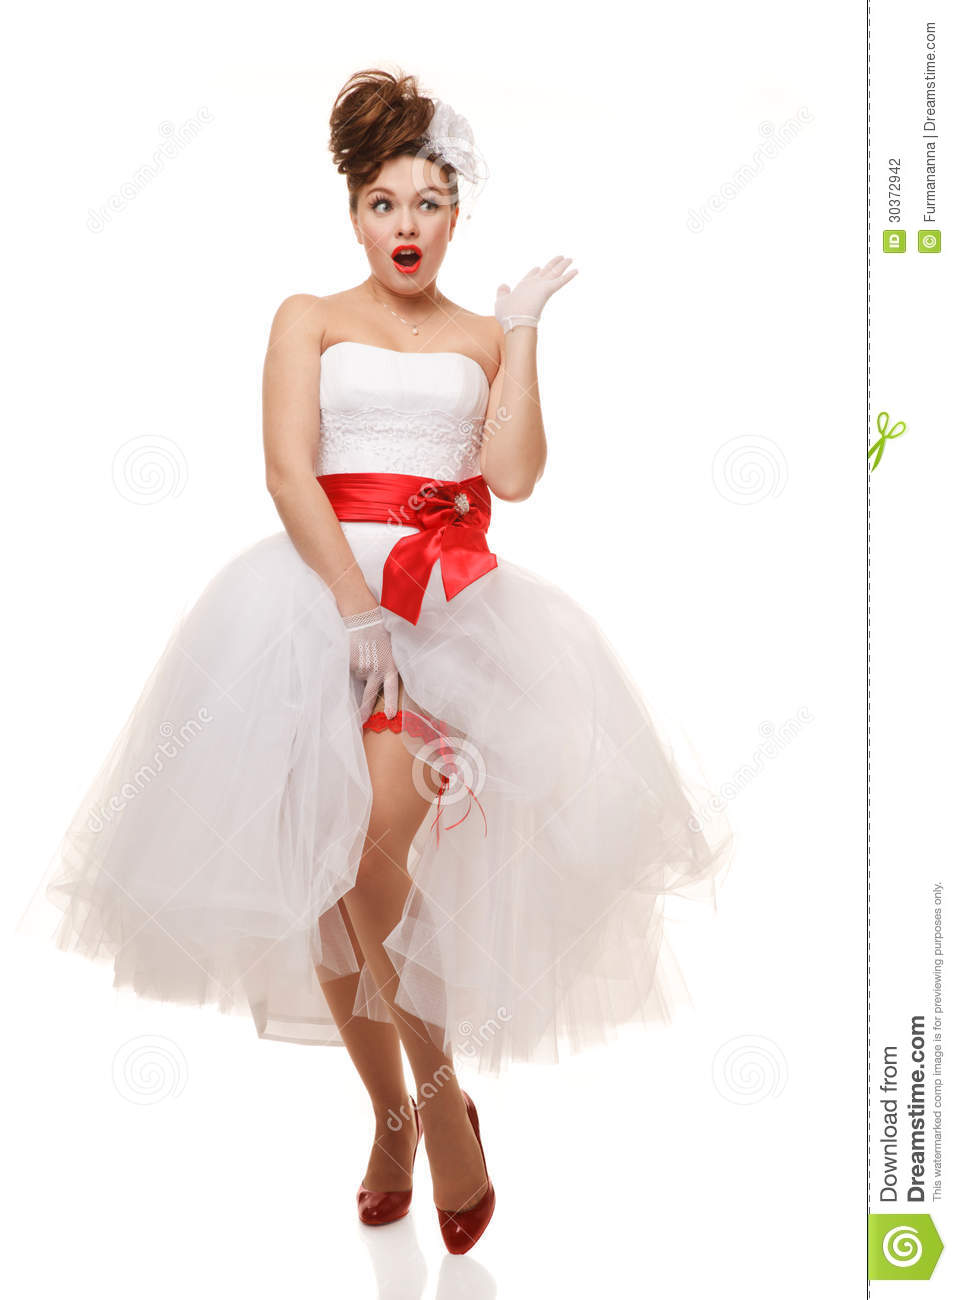 Stock Photography Pin Up Bride Image 30372942